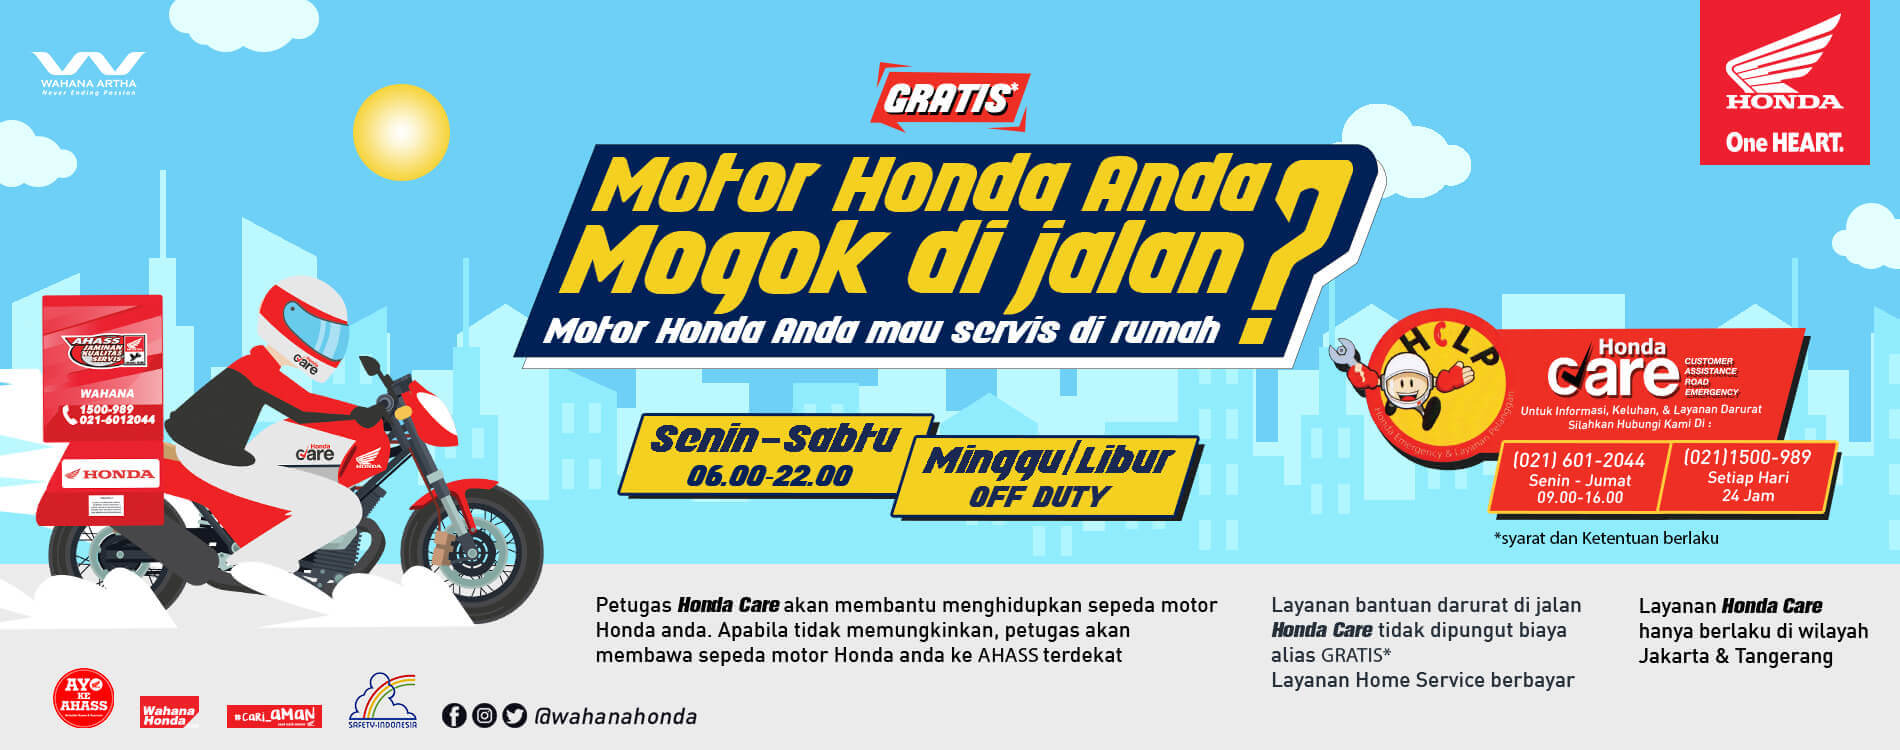 08.Sept Honda Care